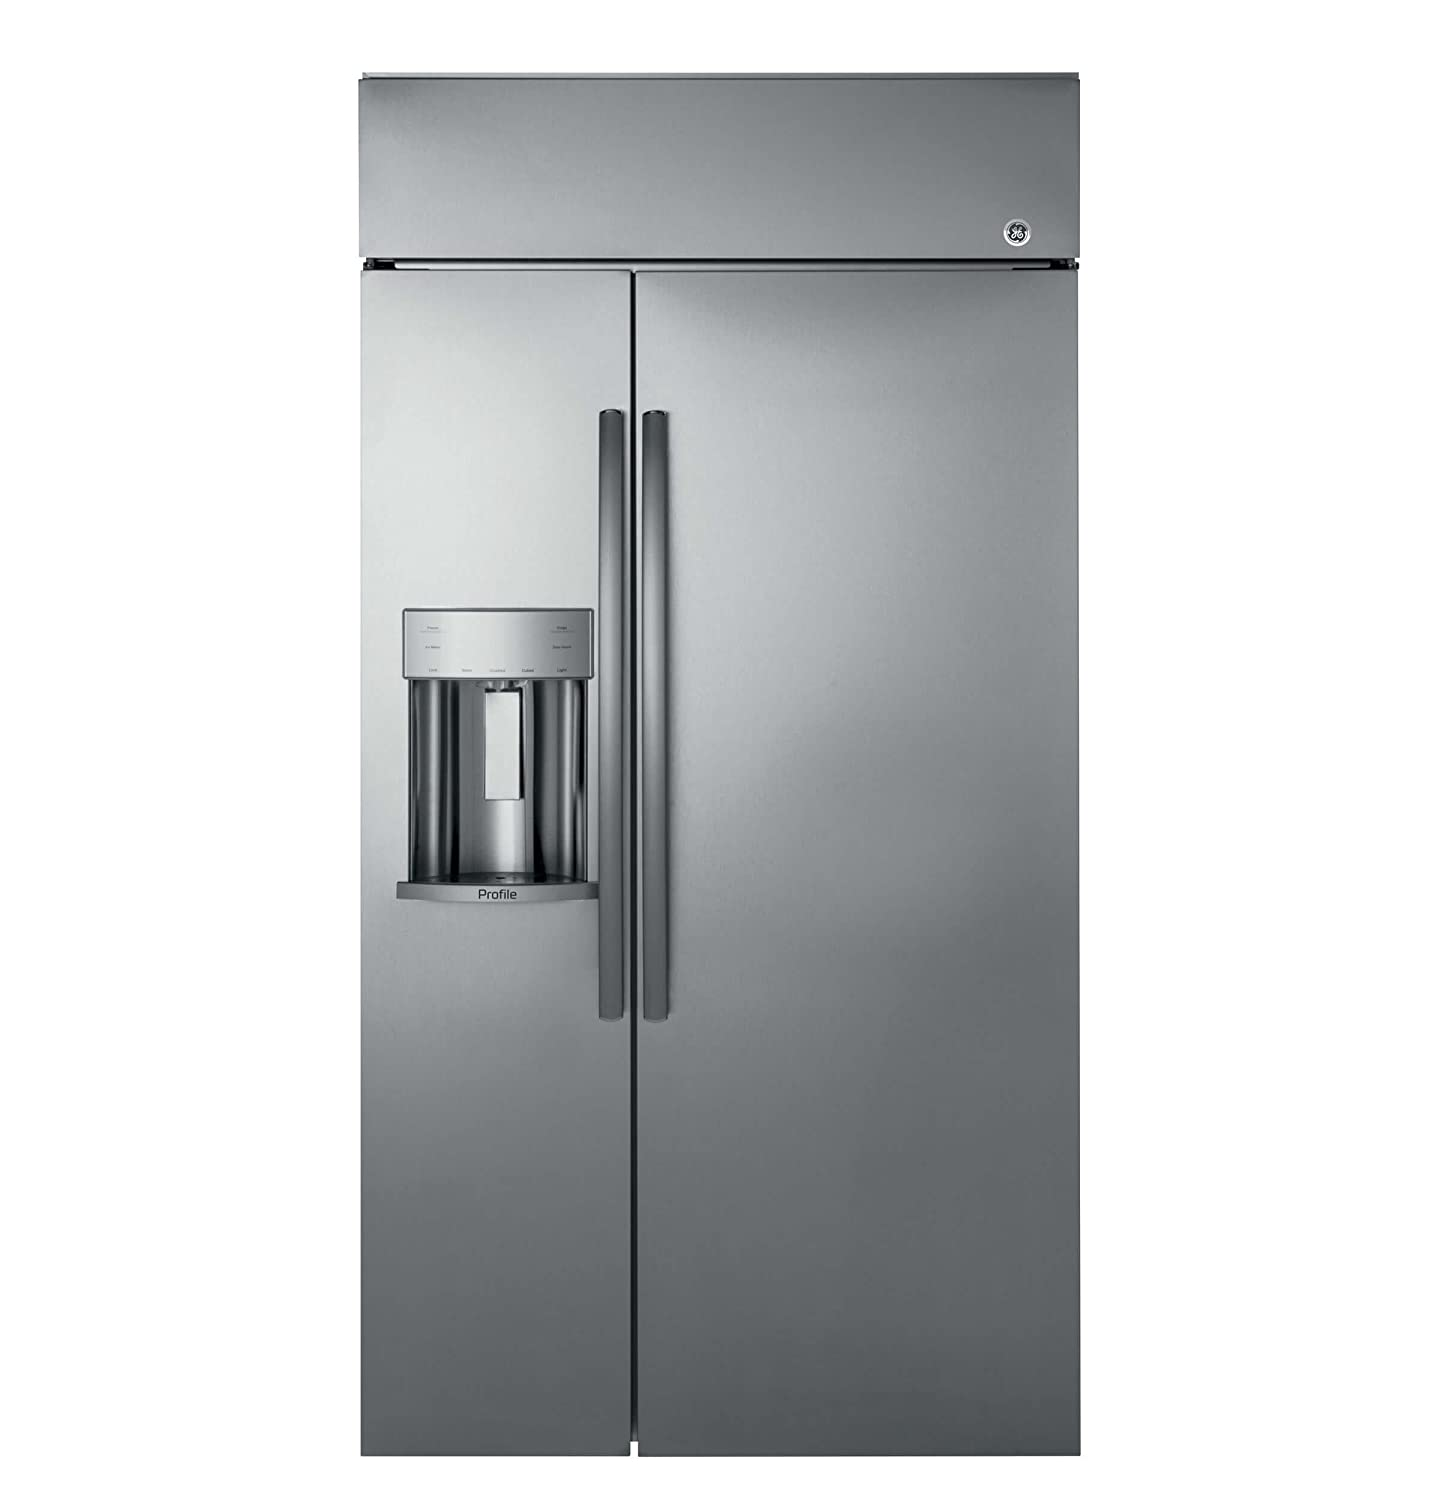 "GE Profile PSB48YSKSS 48"" built-in Side by Side Refrigerator in Stainless Steel"